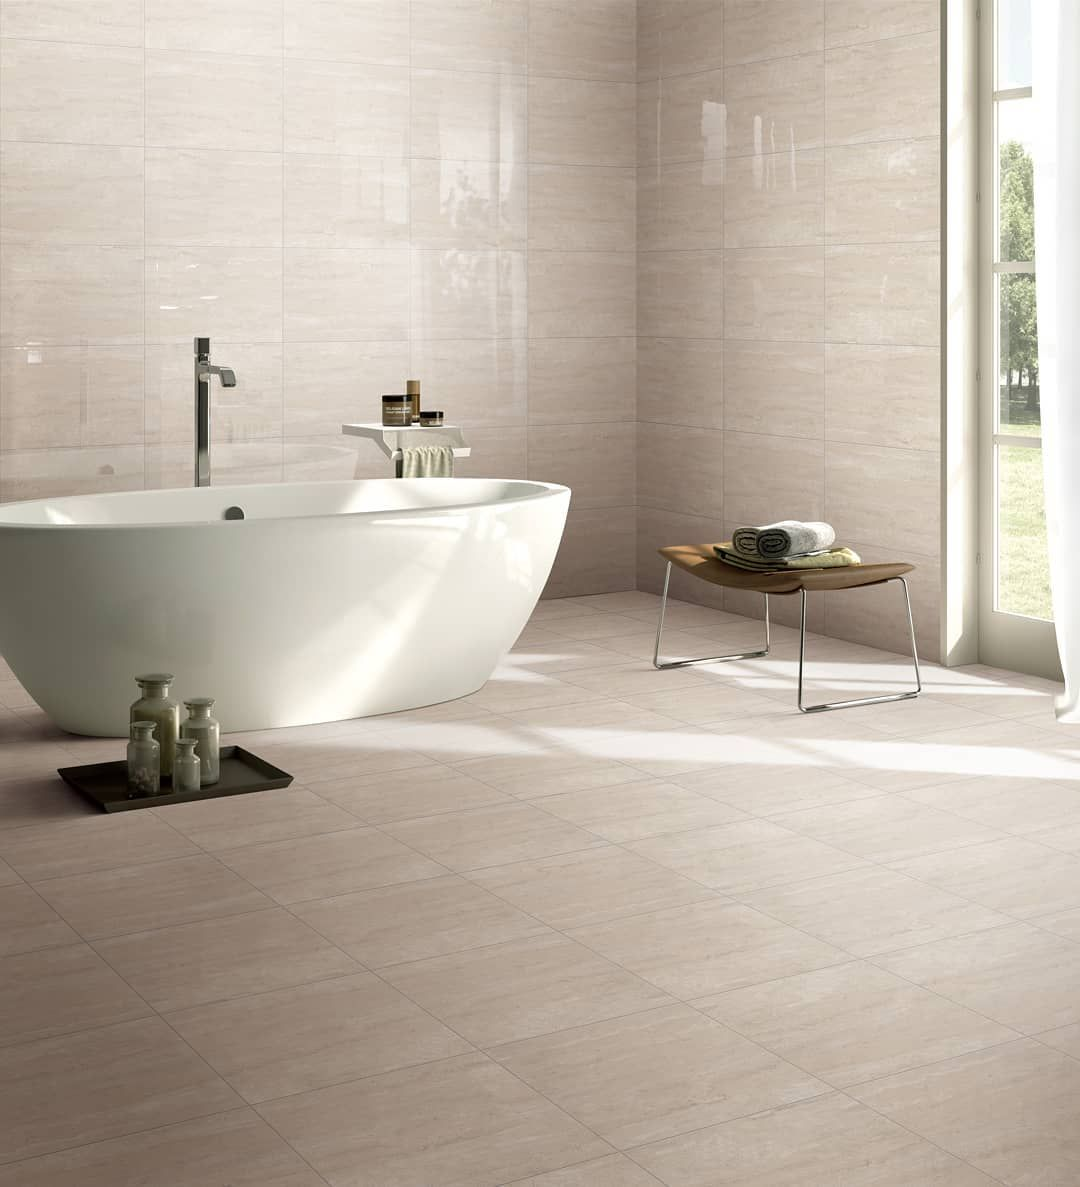 Elite Importers Tiles Our Travertina In Beige With Matching Floor And Wall Is A Dream When Paired With A Compli Free Standing Bath Bathroom Design Flooring